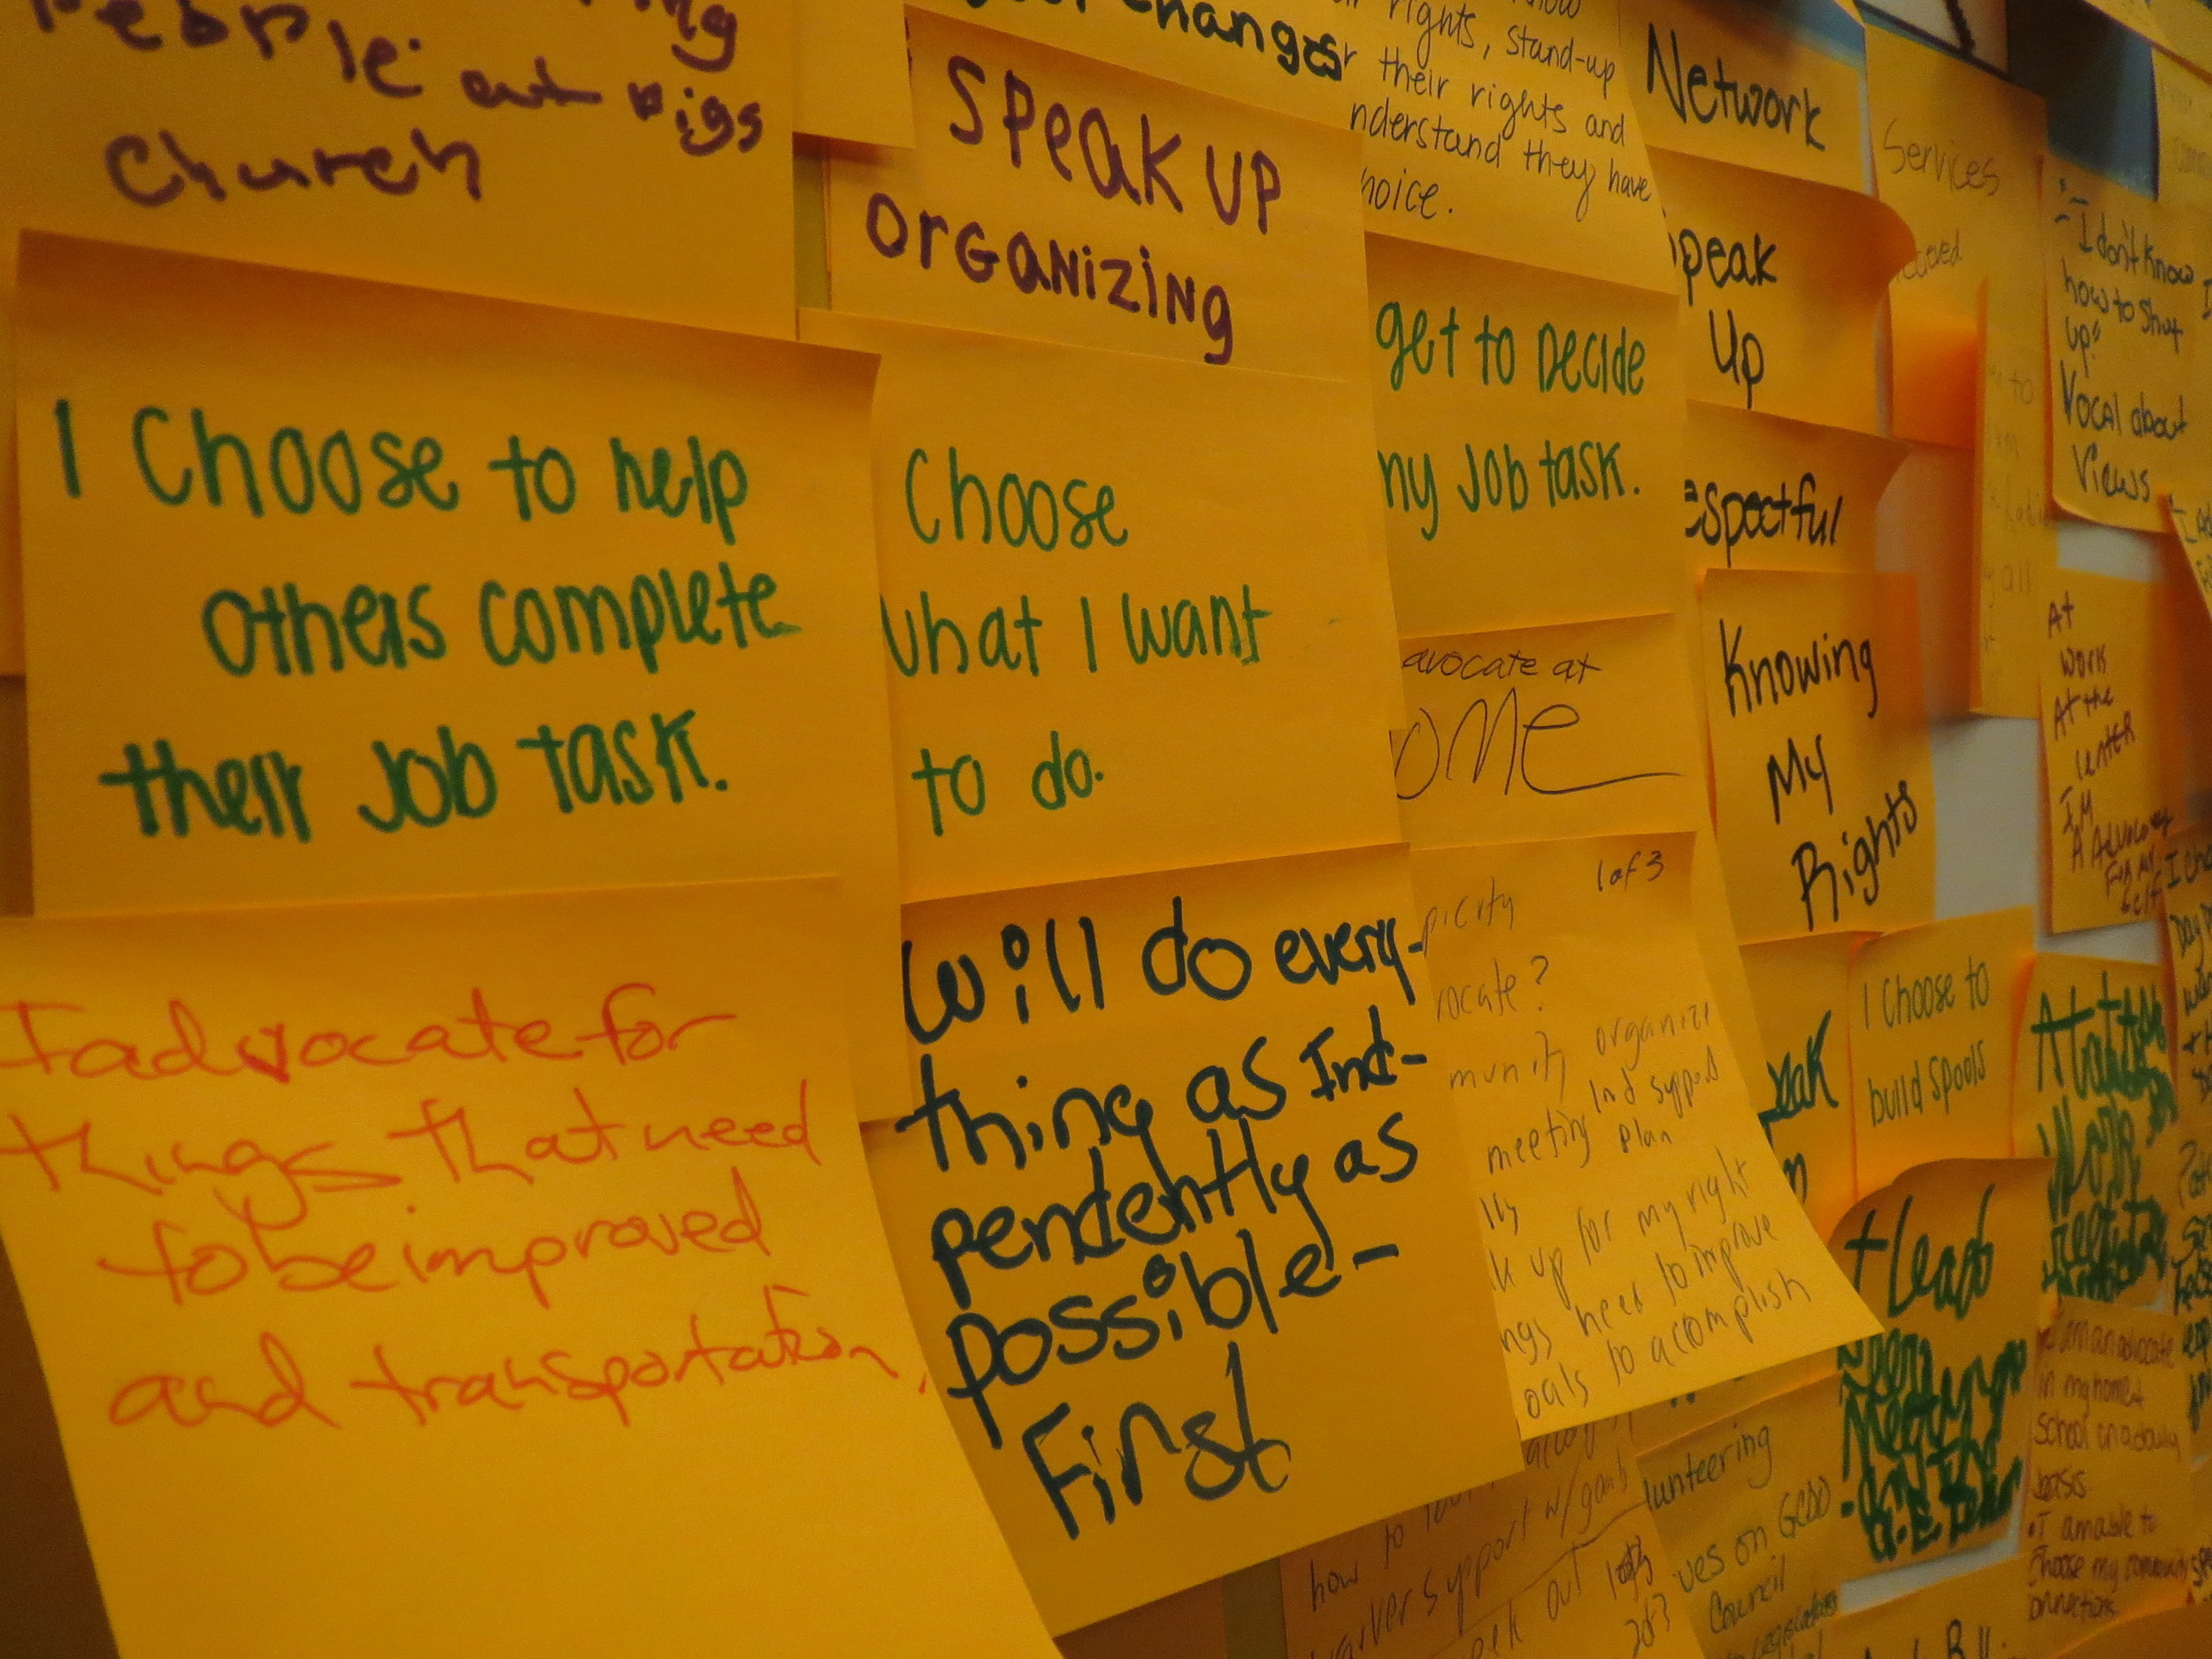 Attendees at Thursday's Sangha Unity Network Self-Advocacy Network Planning Session placed notes on a board outlining their personal goals.